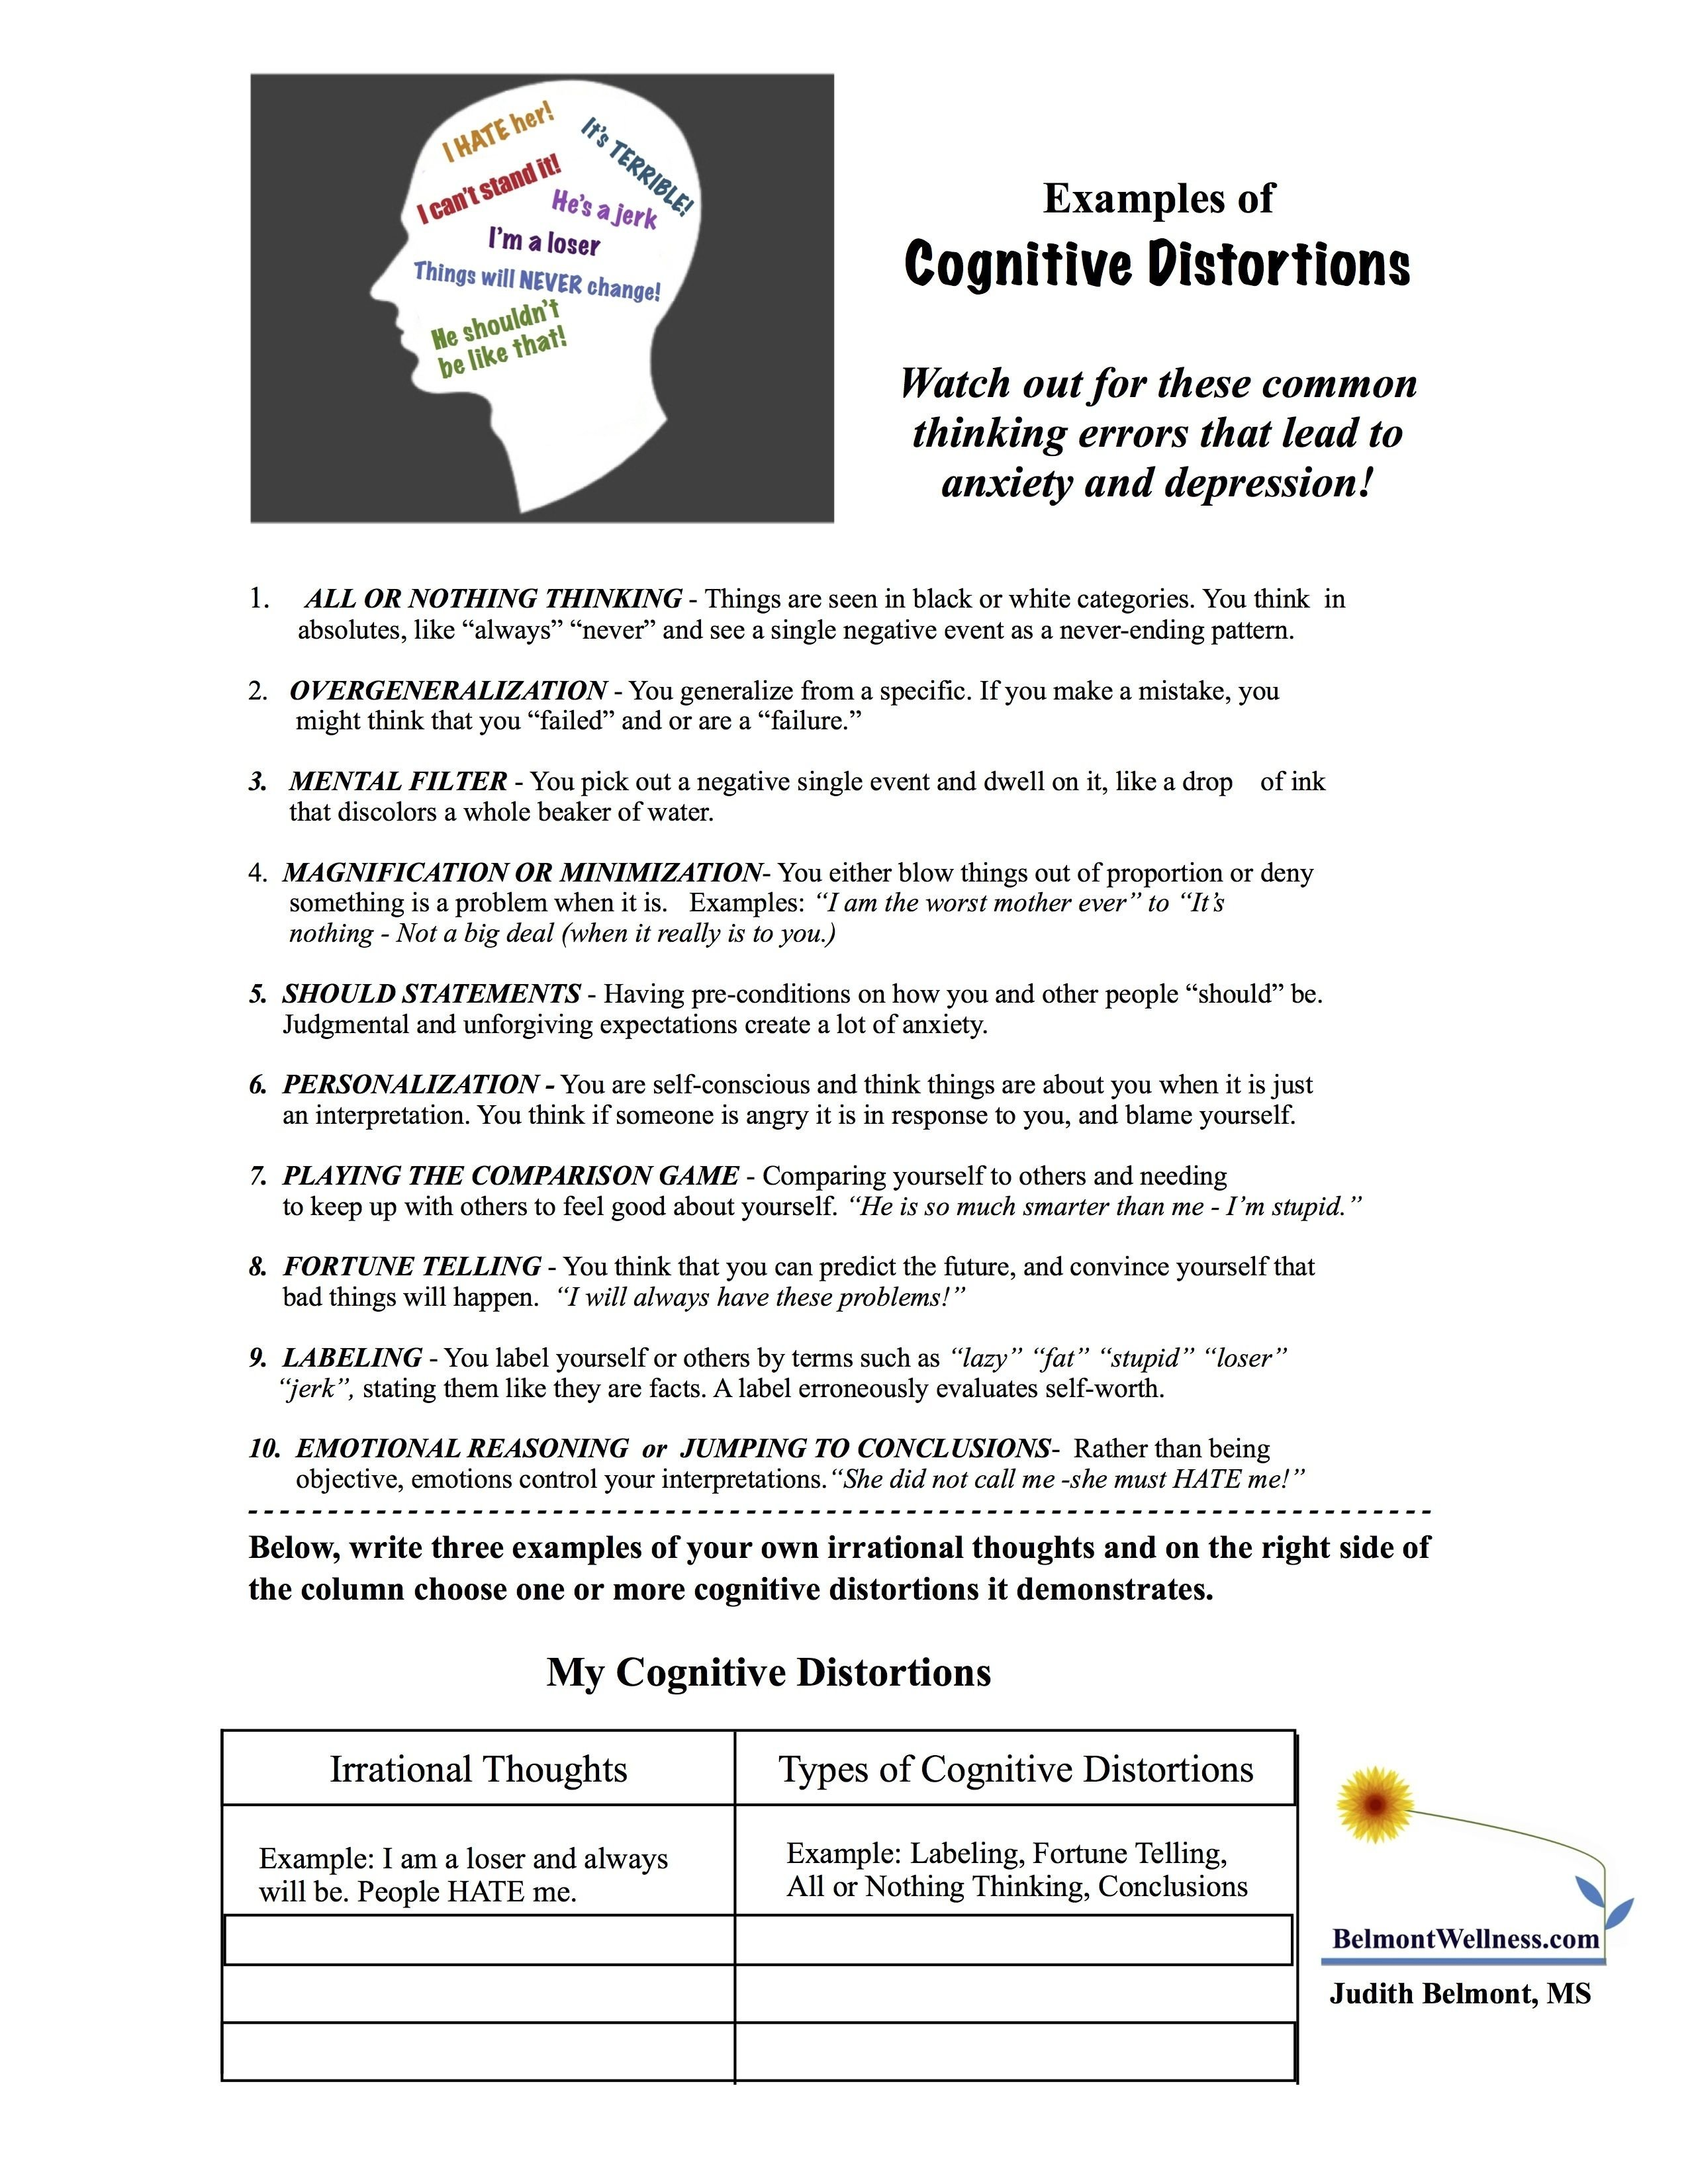 10 Unique Group Ideas For Mental Health cognitive distortions 2550x3300 therapy worksheets 1 2020